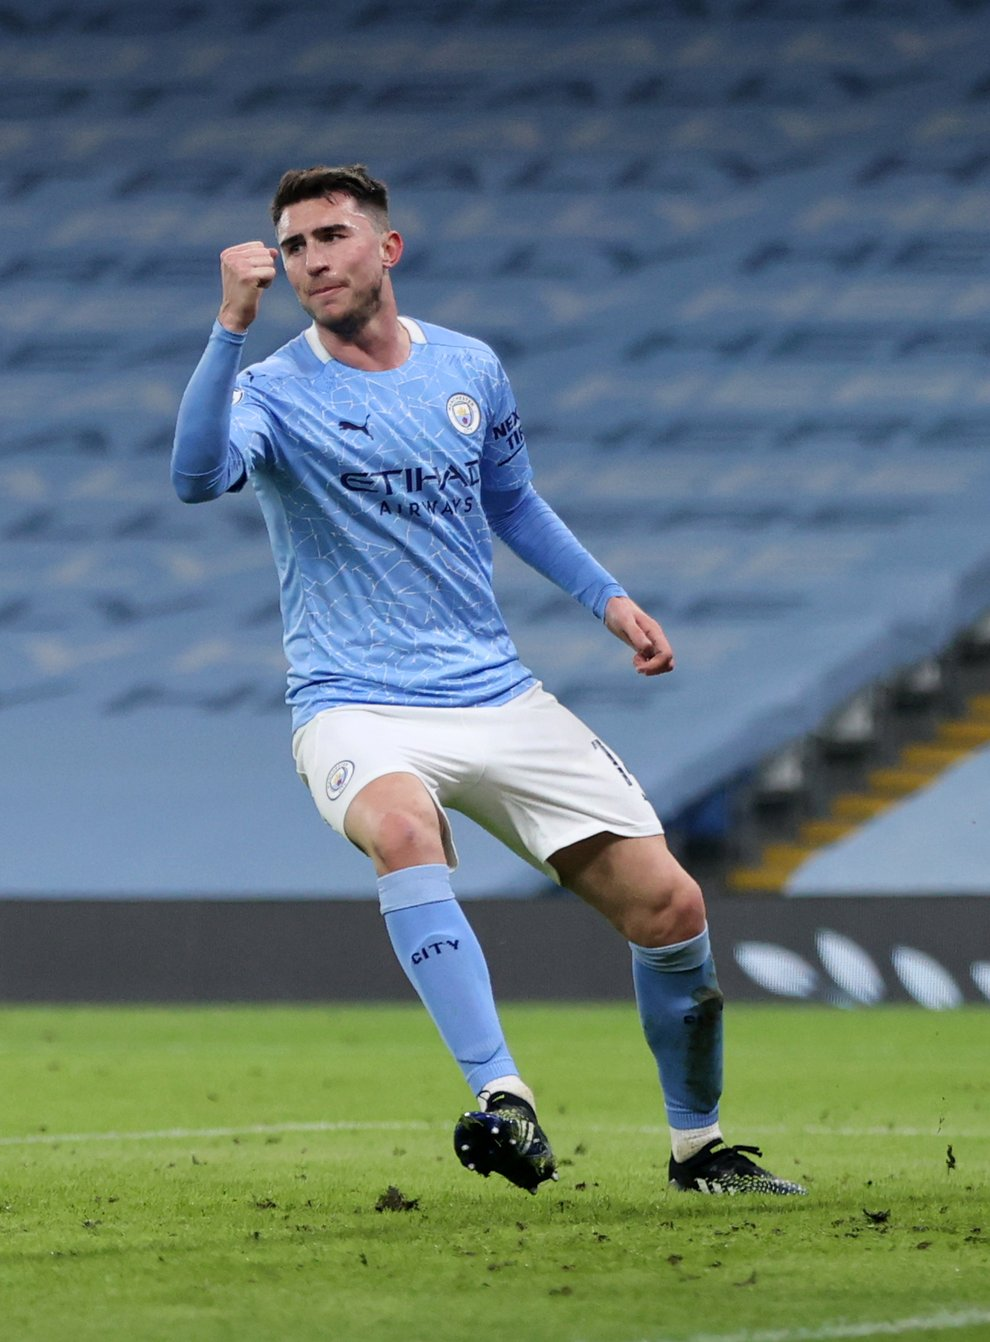 Manchester City defender Aymeric Laporte made his debut for Spain on Friday night.